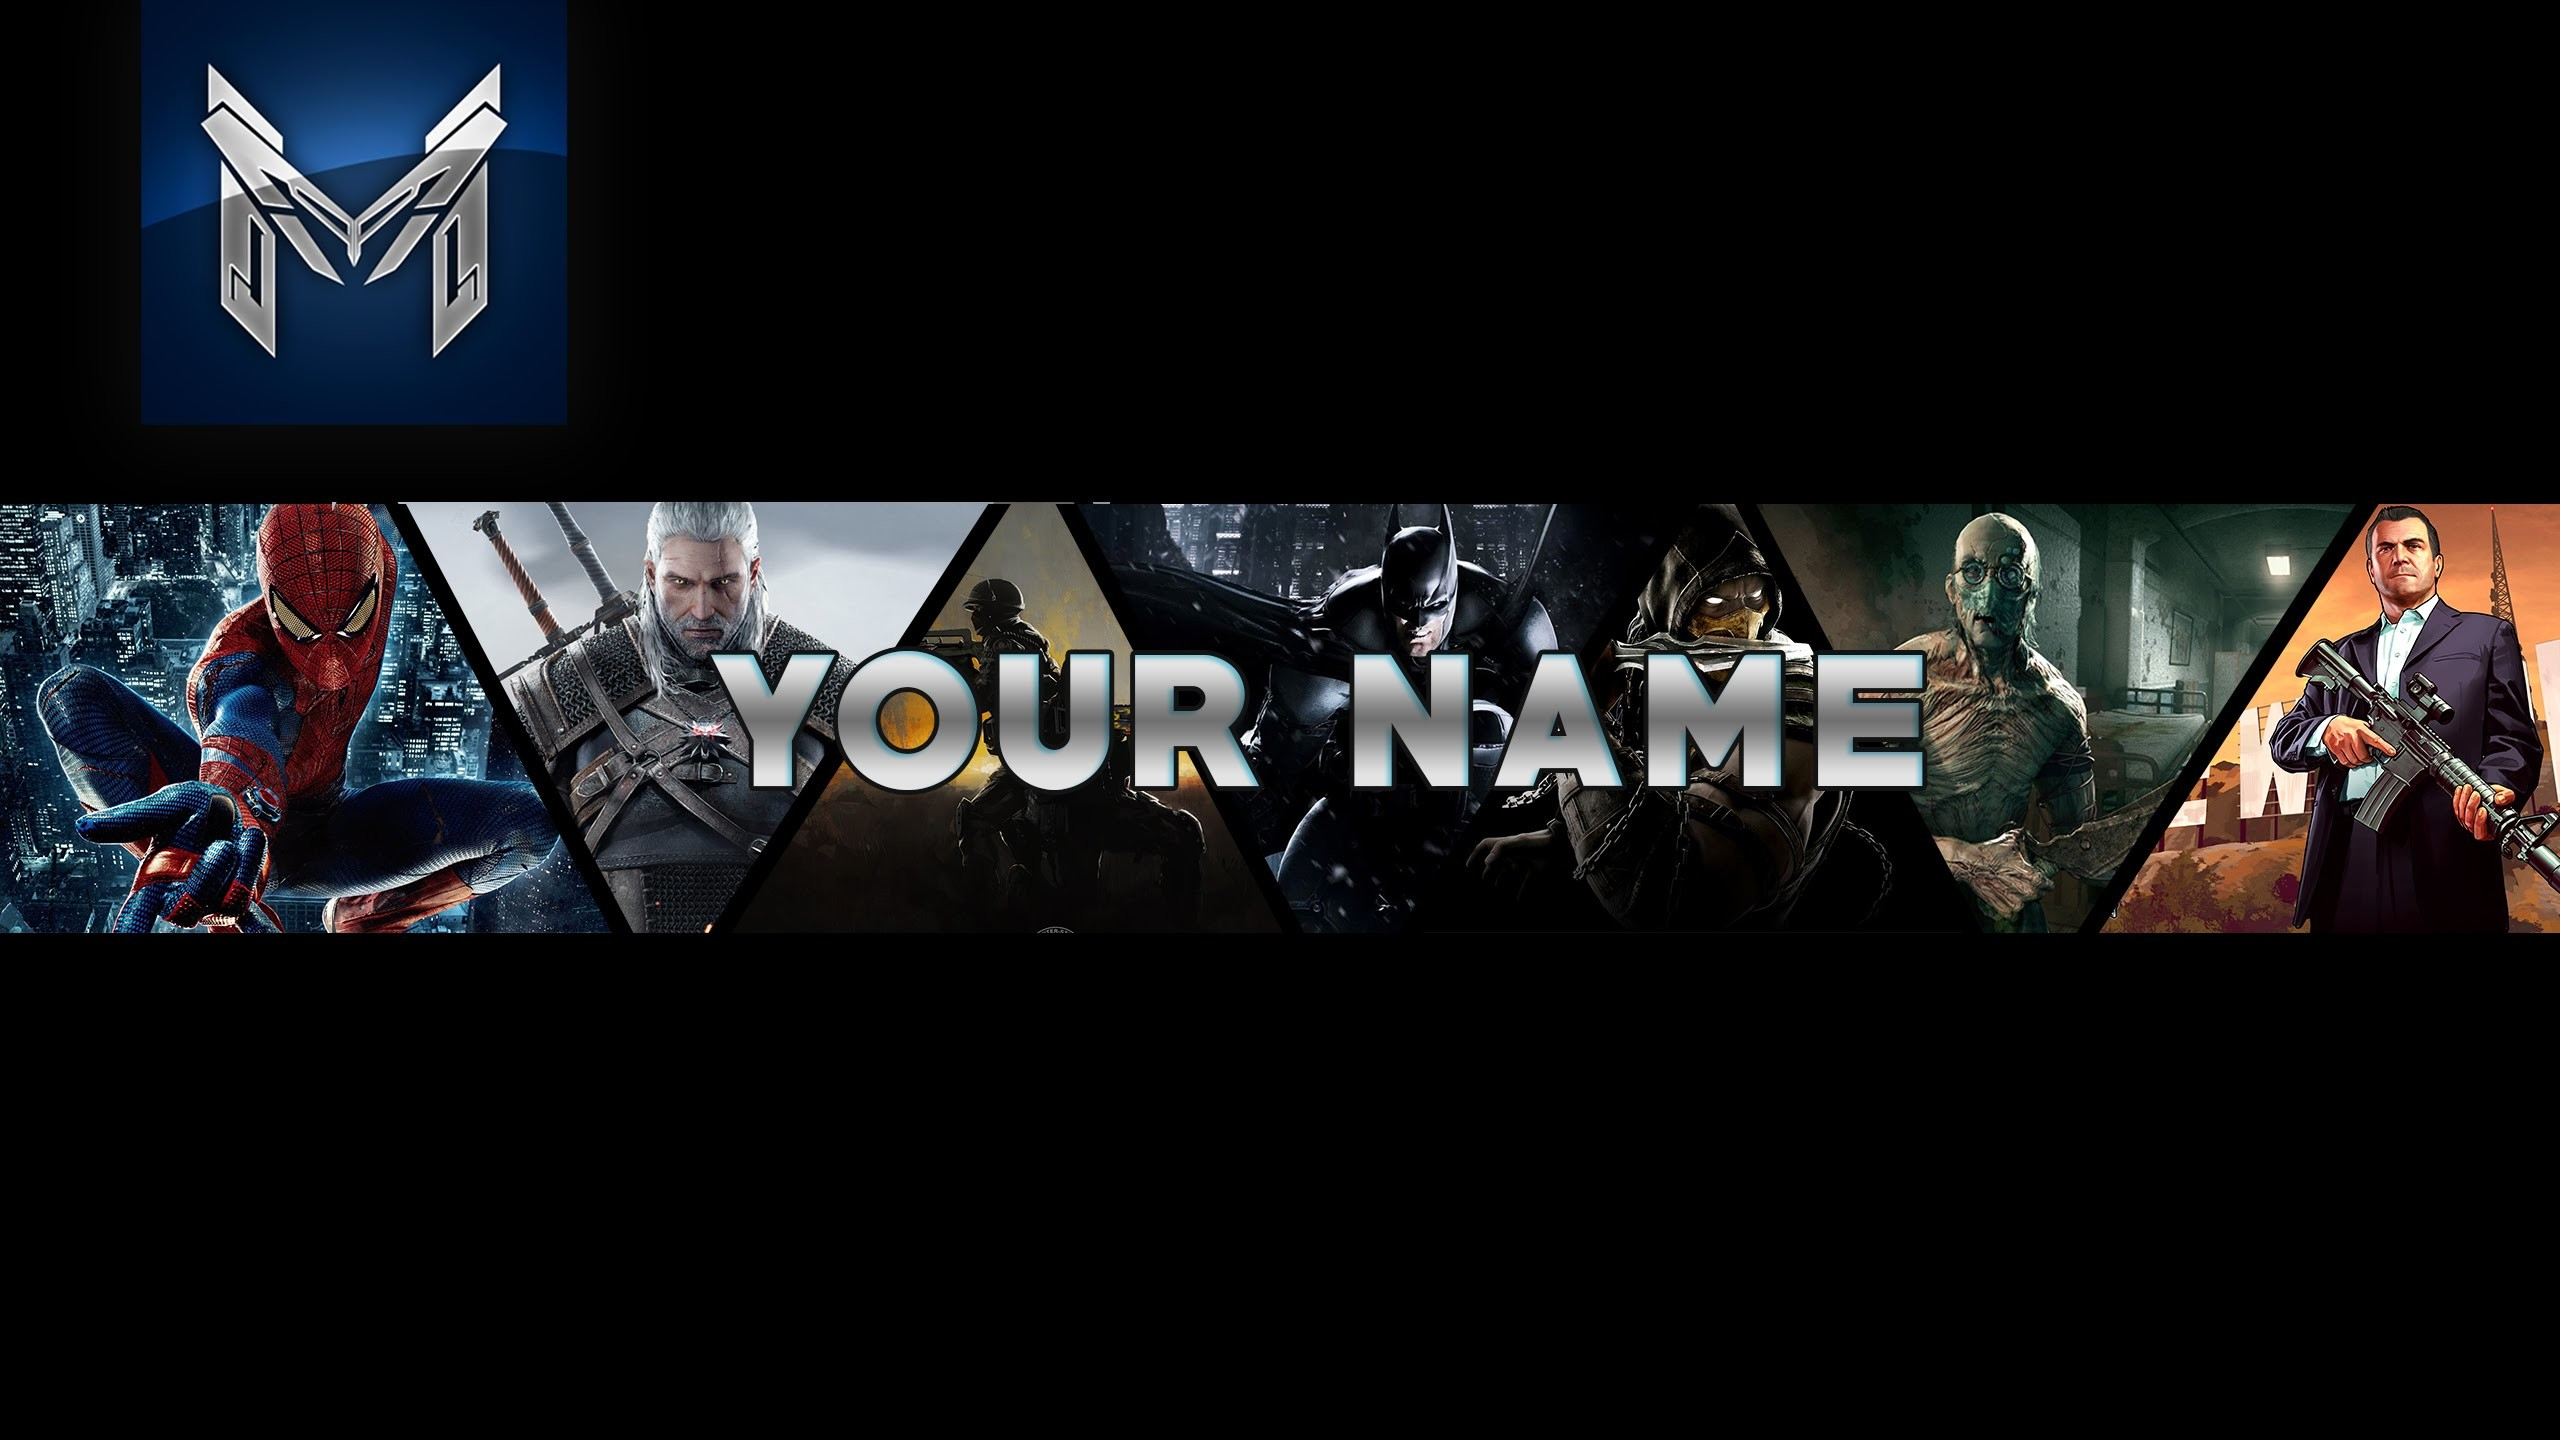 Gaming Youtube banner Template   Free Downland   Speed Art (Photoshop CS6)  – YouTube